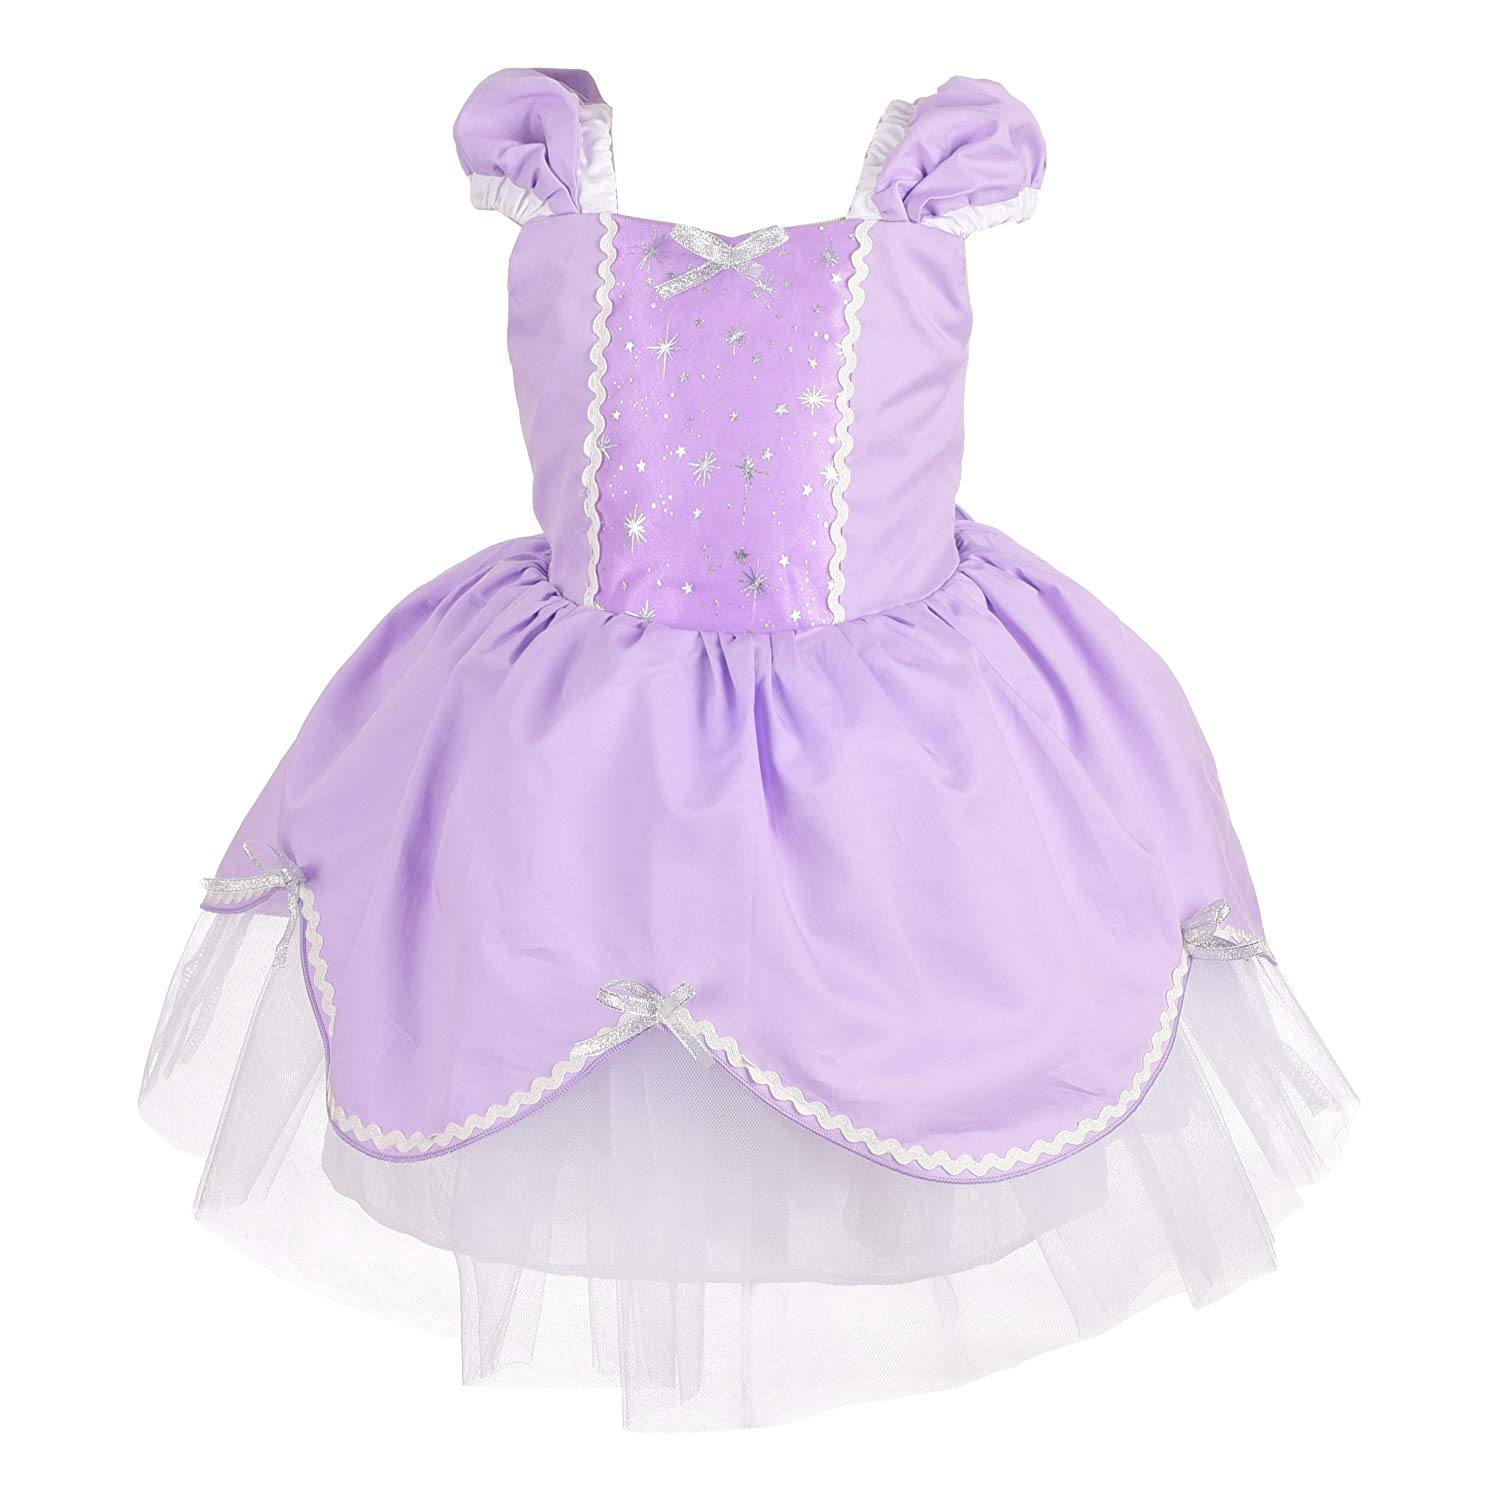 b77095b3d6029 Cheap Princess Sofia Dress, find Princess Sofia Dress deals on line ...